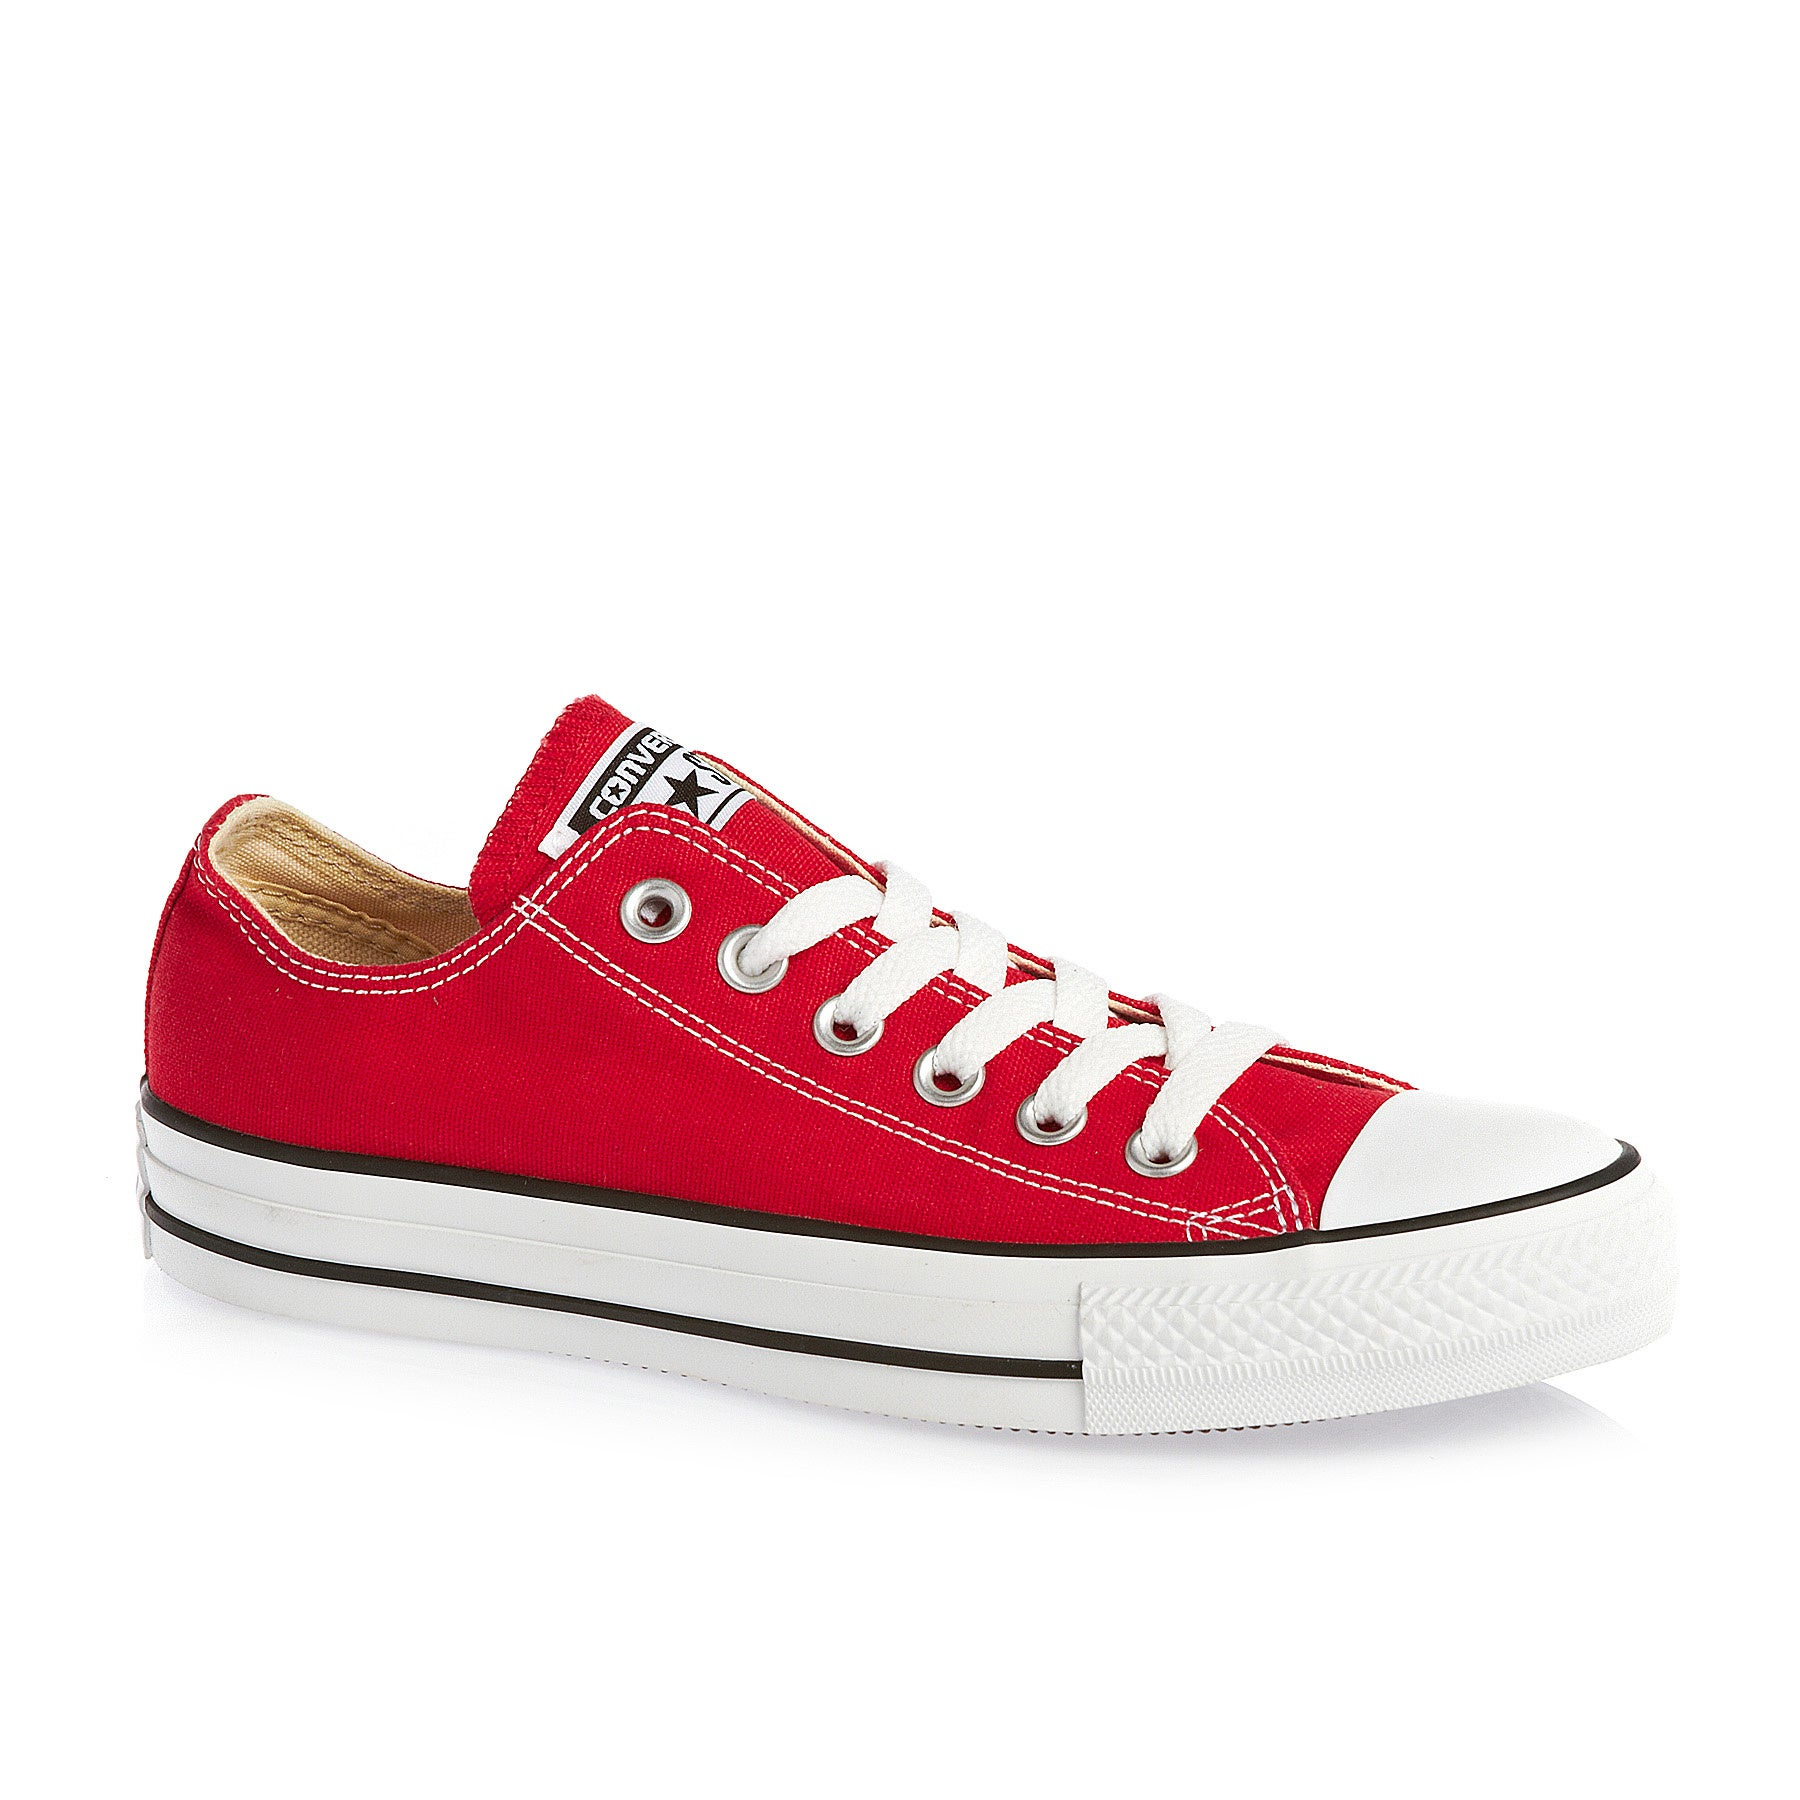 Converse Chuck Taylor All Stars OX Shoes - Red